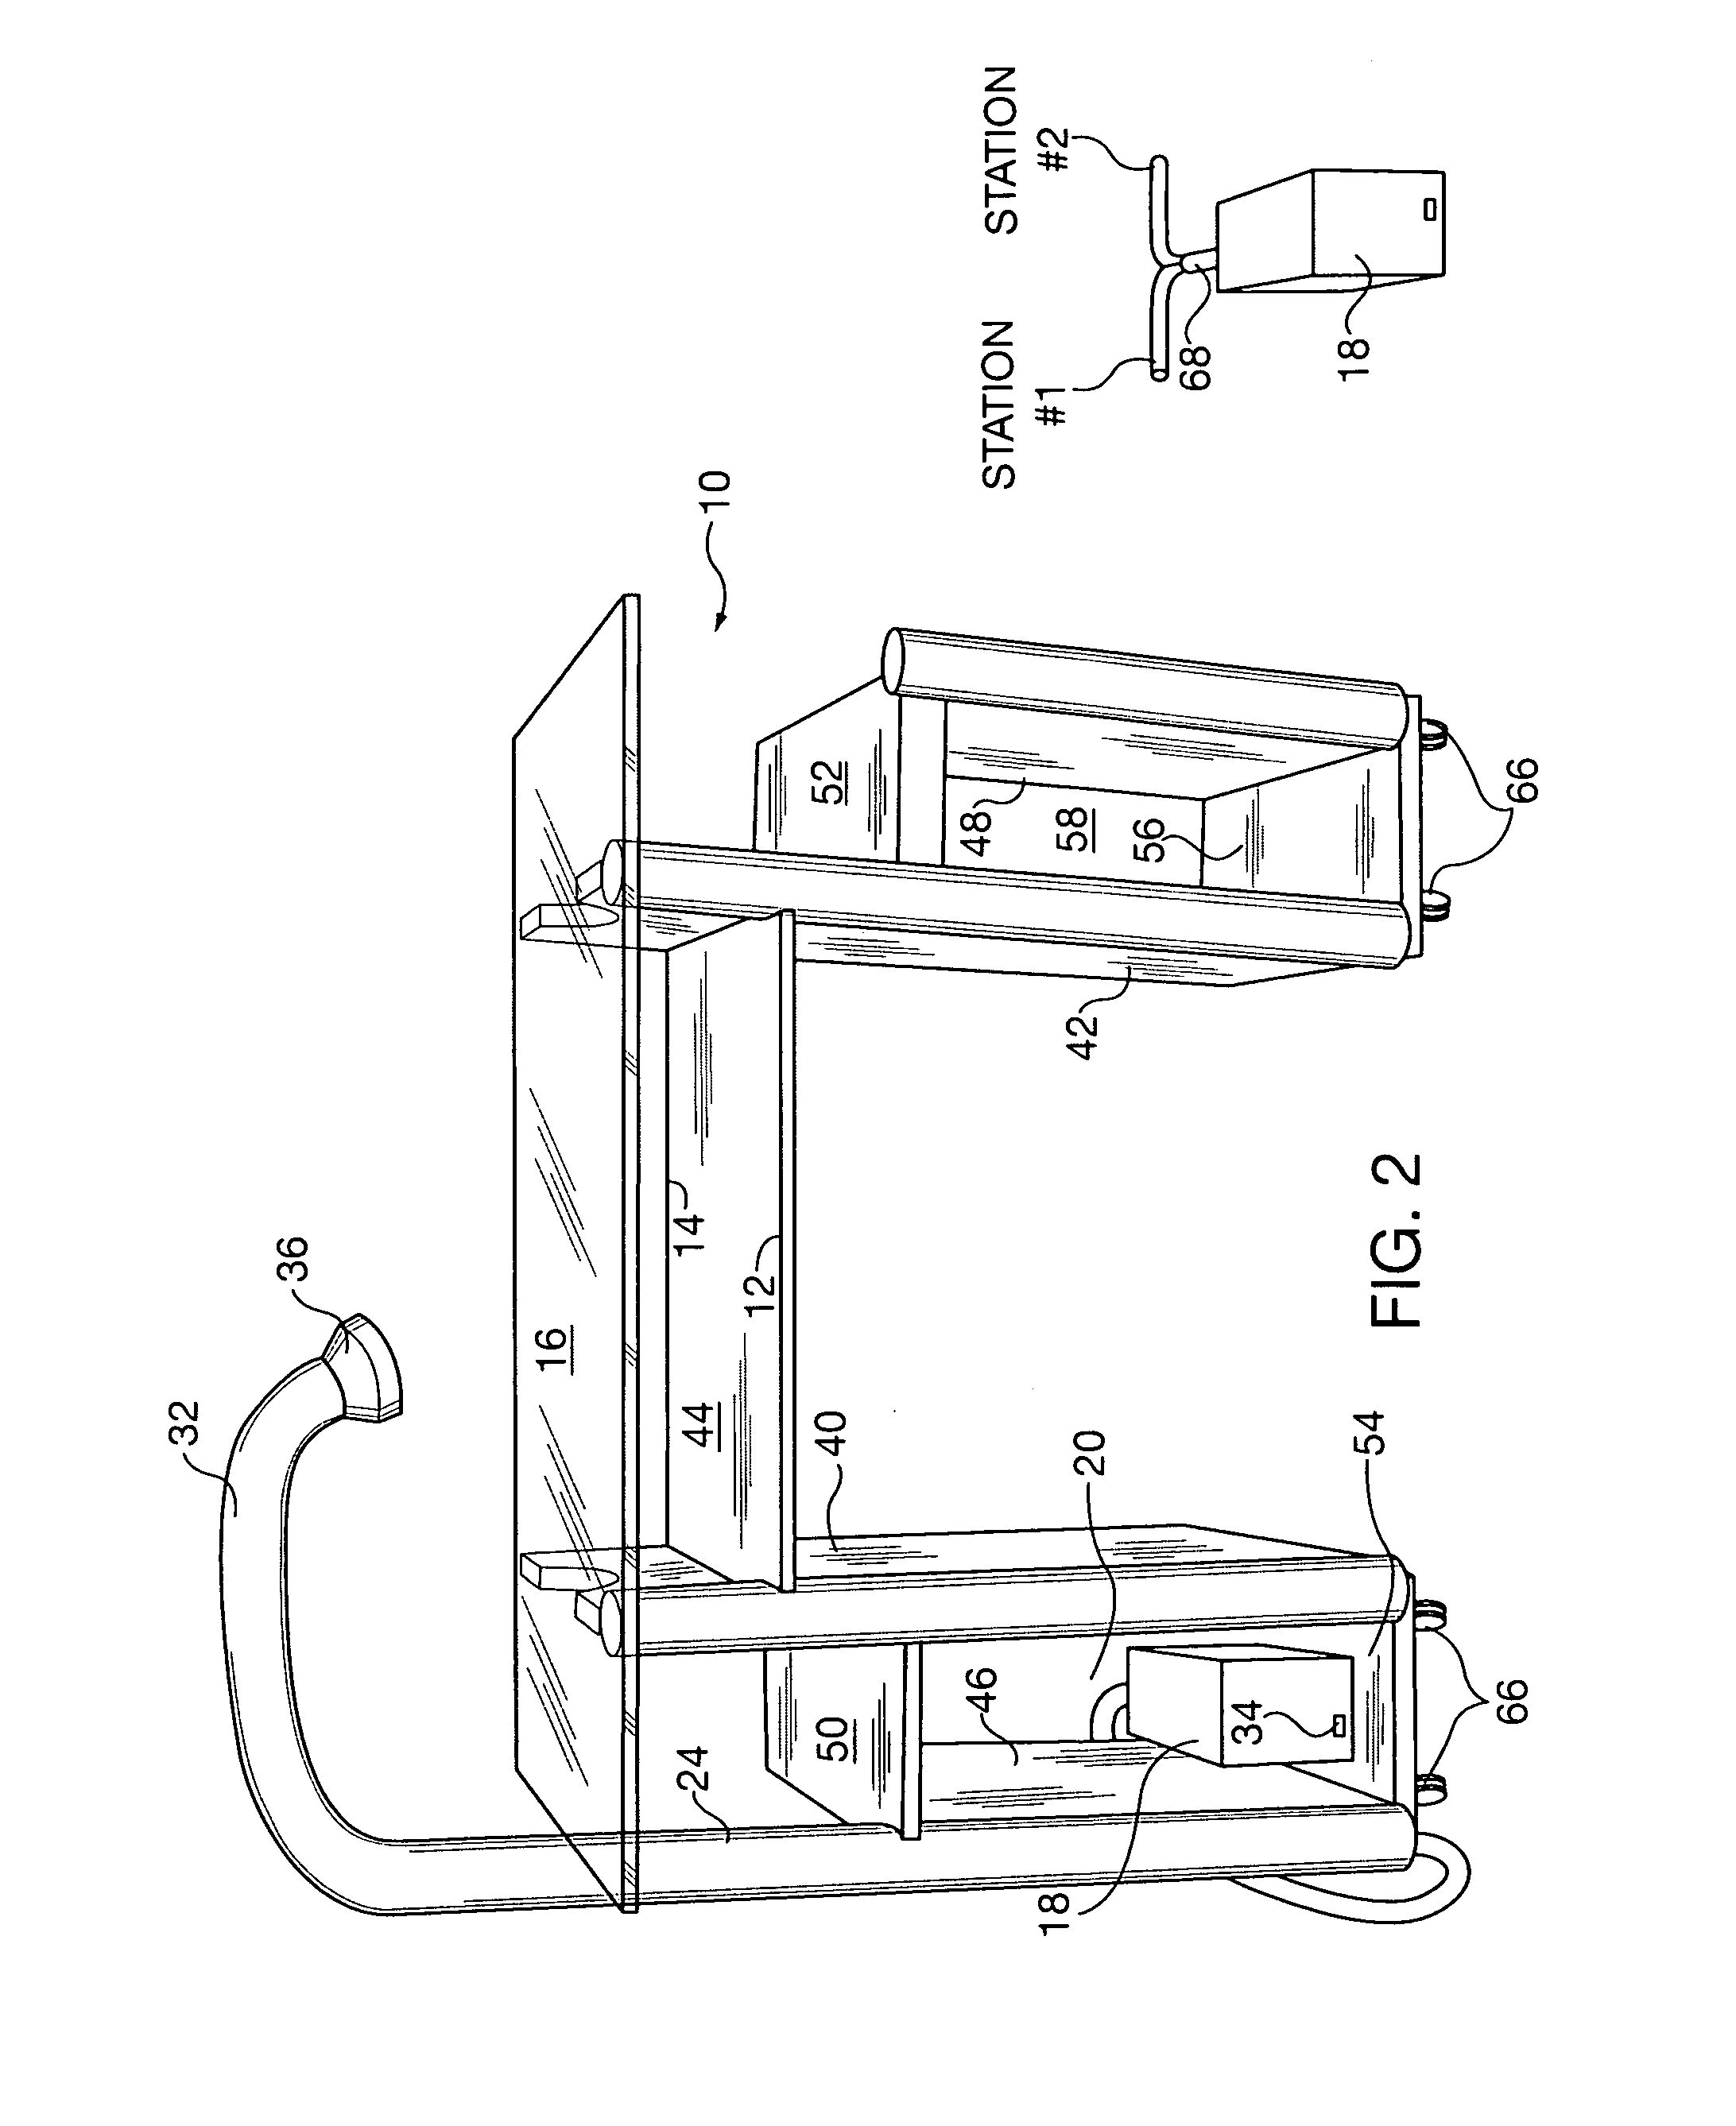 Patent Us20120045981 Nail Salon Workstation Google Patents